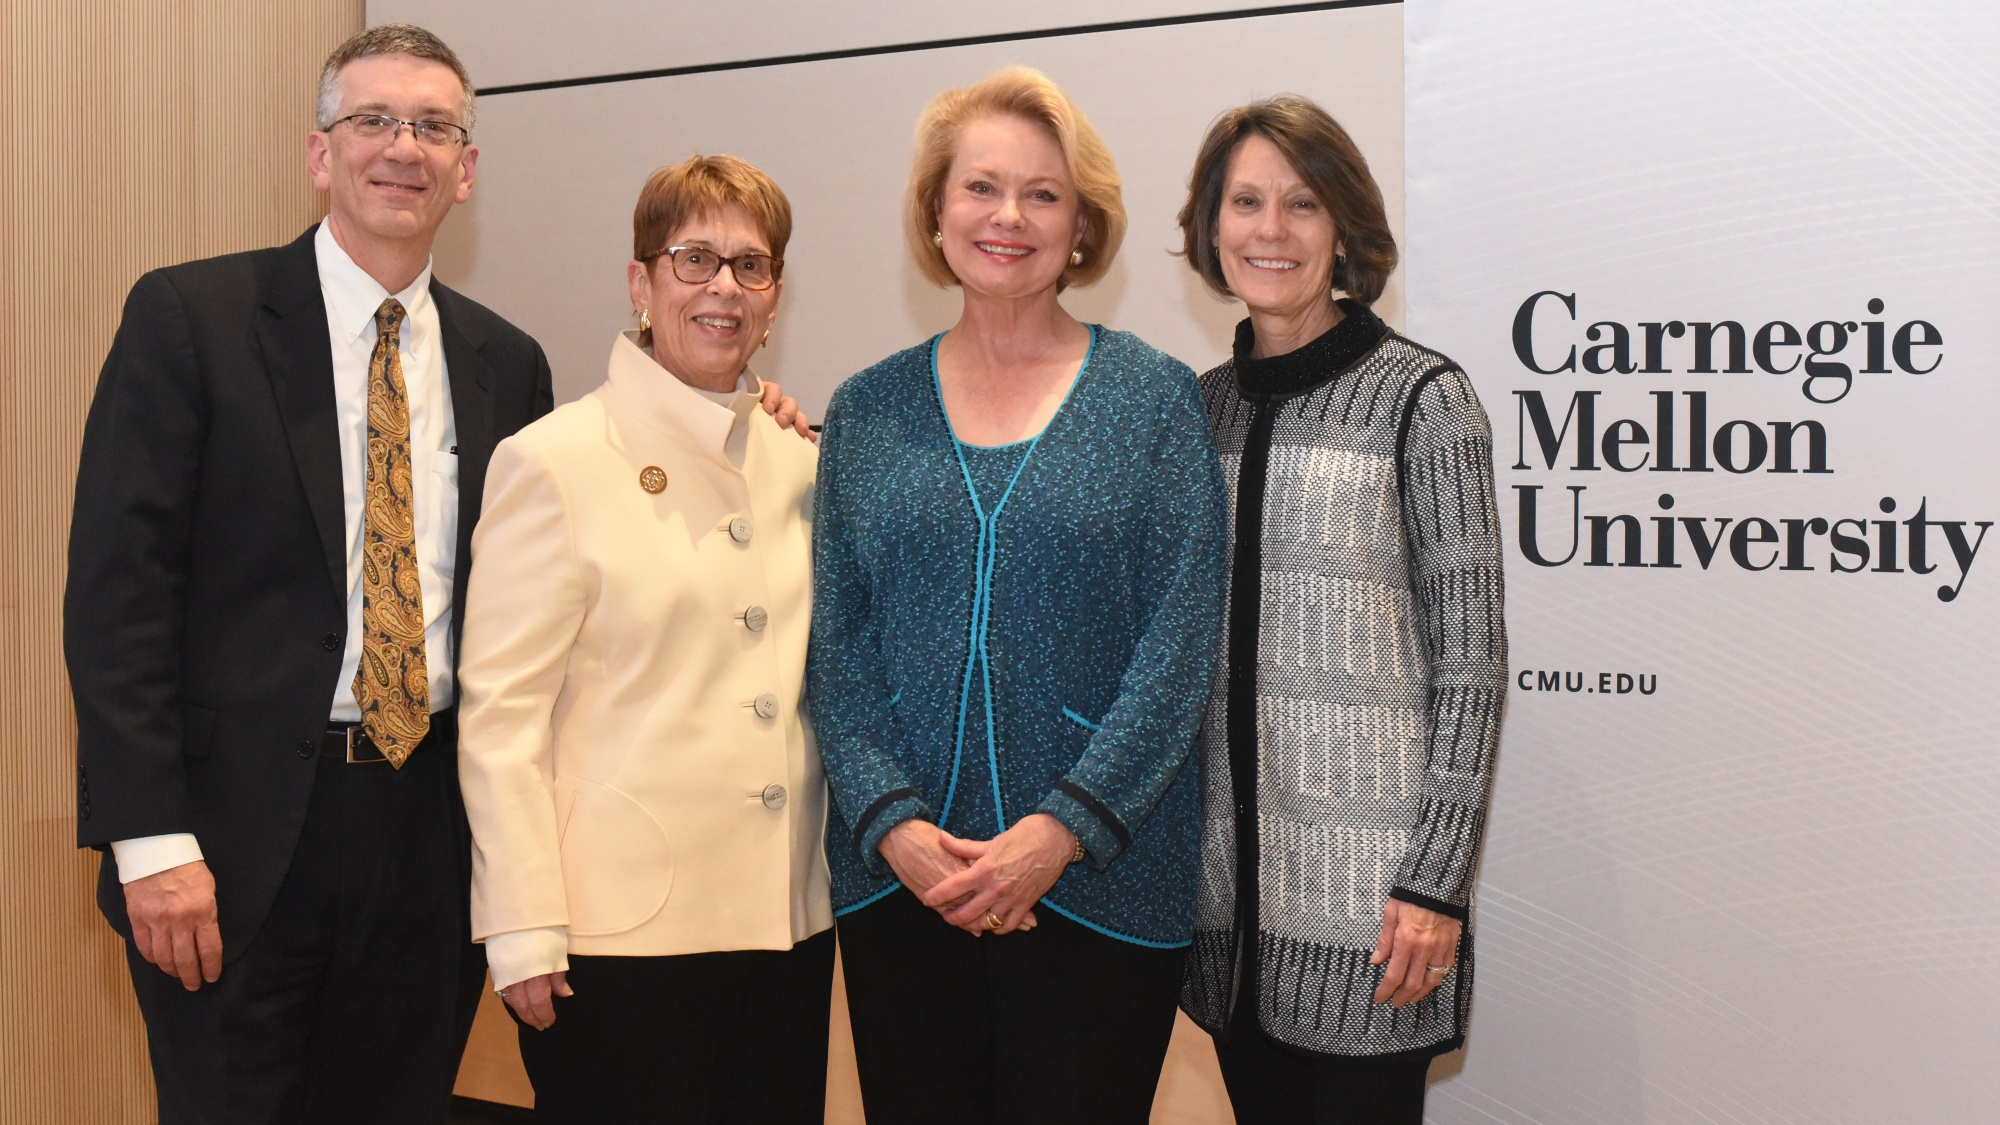 Provost James Garrett pictured with Jeanne Berdik, Bev Elliott and Jennifer Martin of ARCS Pittsburgh